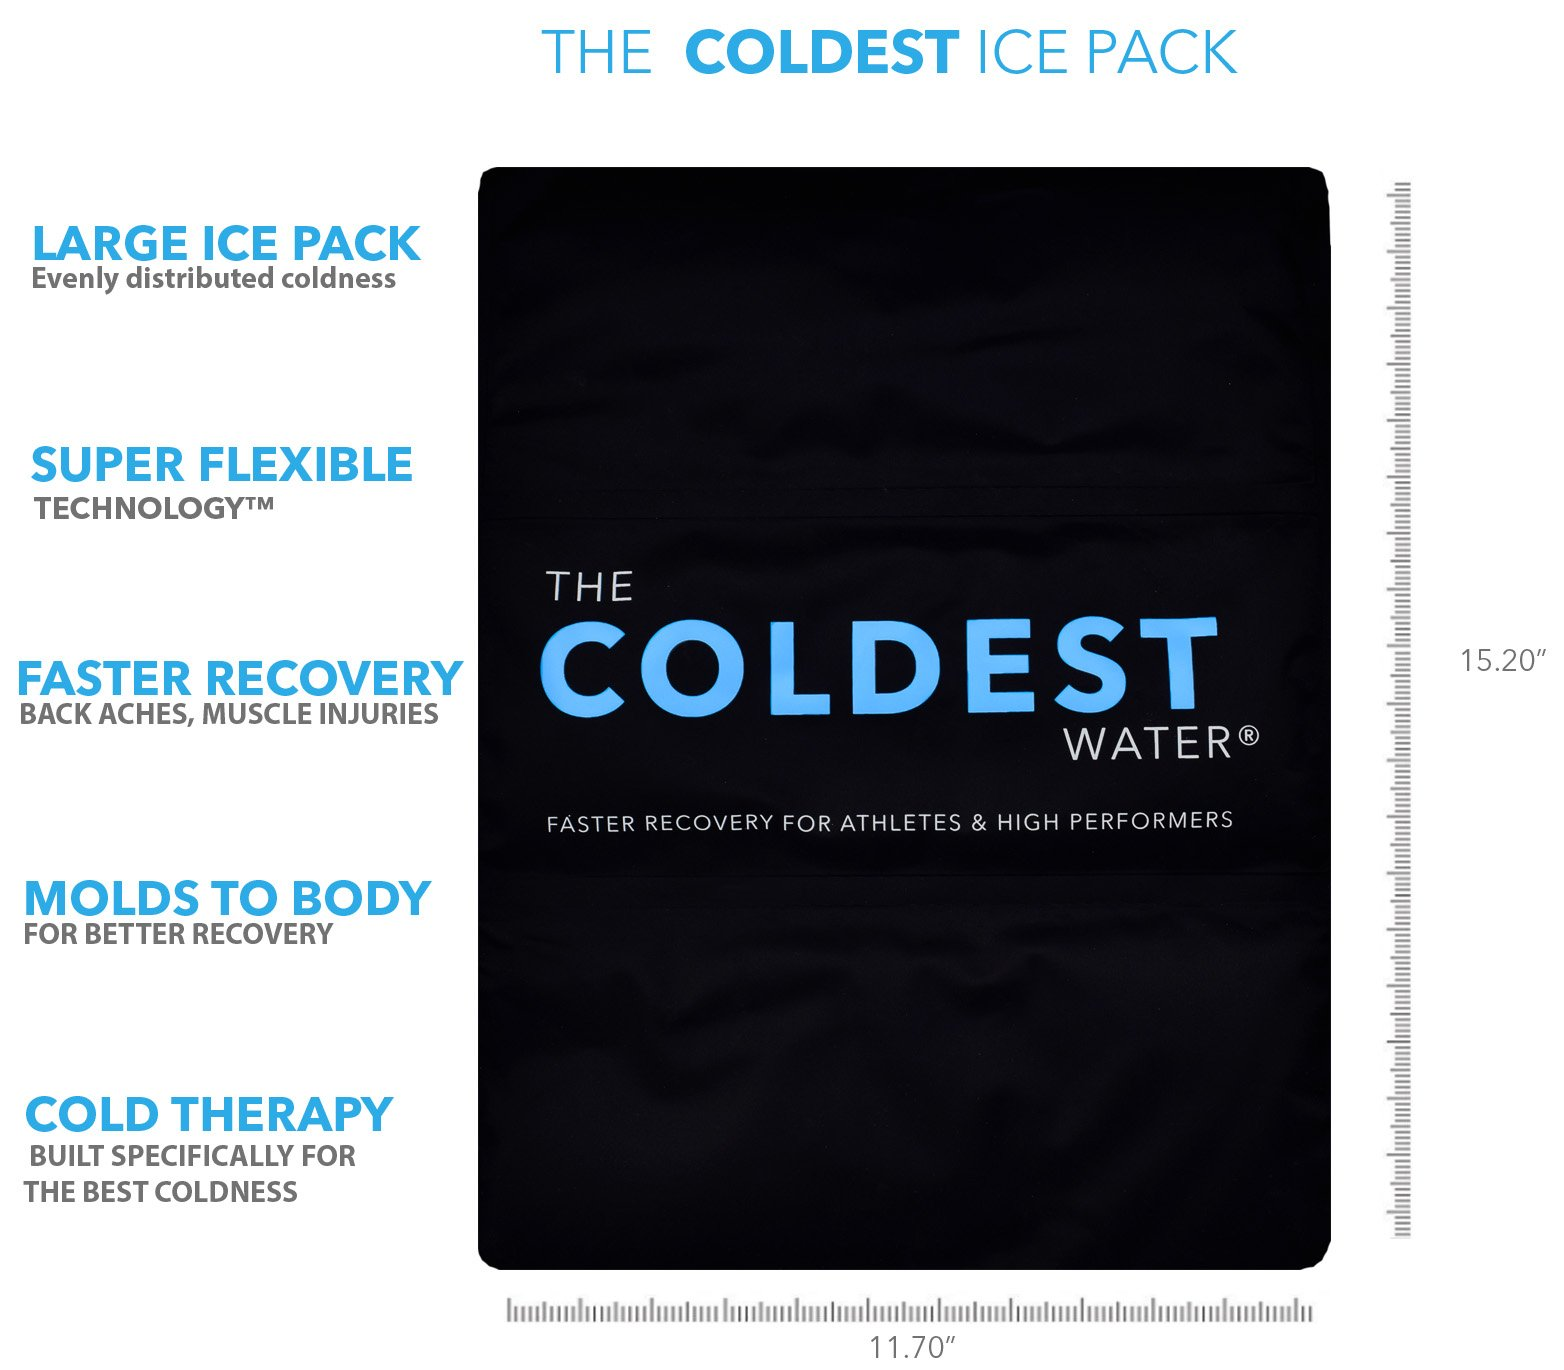 The Coldest Ice Pack Gel Reusable Flexible Therapy Best For Back Pain Leg Arm Knee Shoulder Sciatic Nerve Recovery Medical Grade X-Large Big Compress 15'' x 12'' by The Coldest Water by The Coldest Water (Image #2)